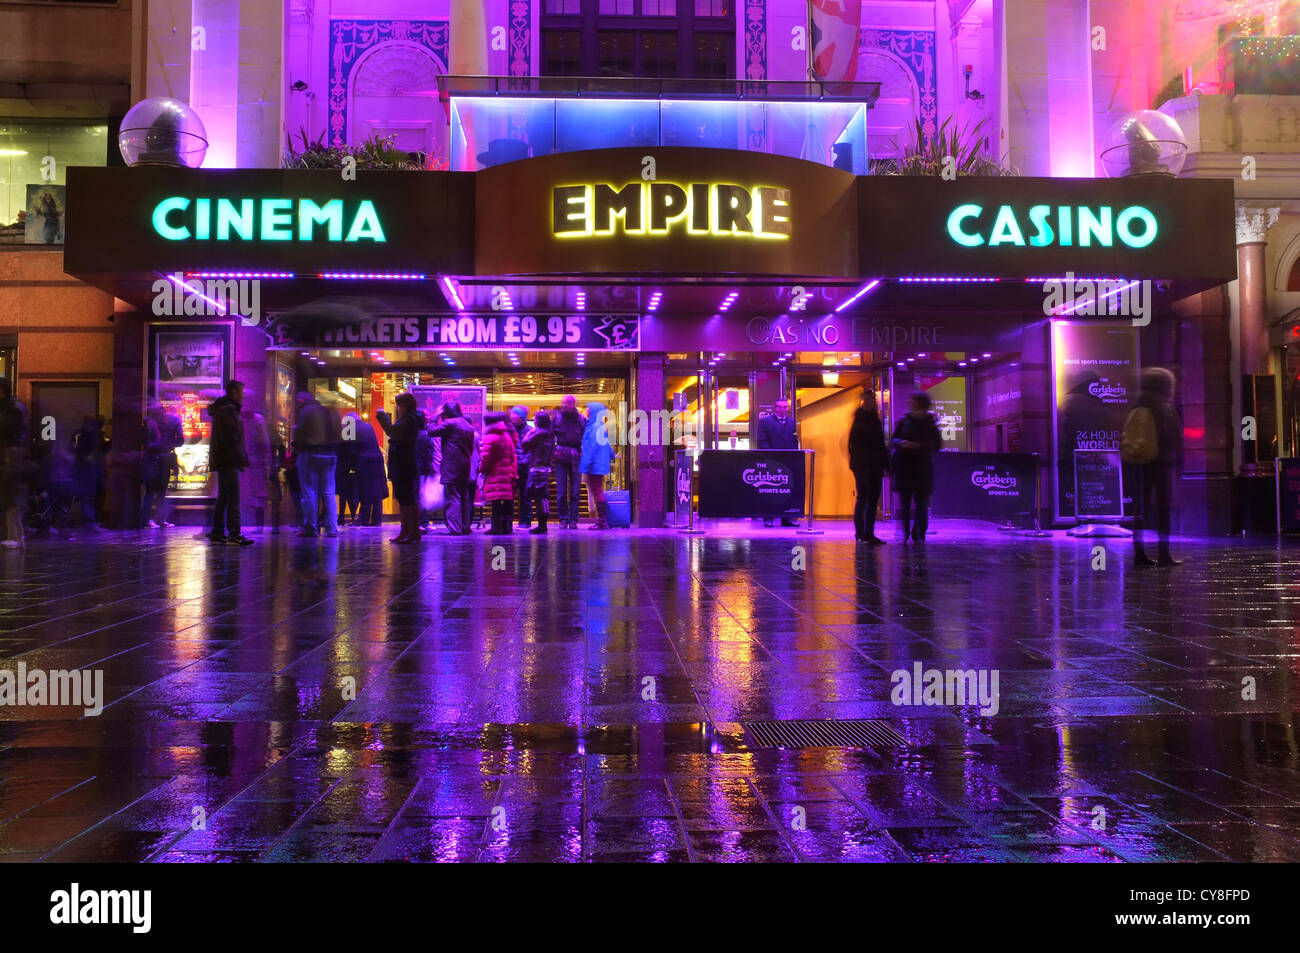 Empire Cinema Casino with people gathered outside in Leicester square, London Stock Photo